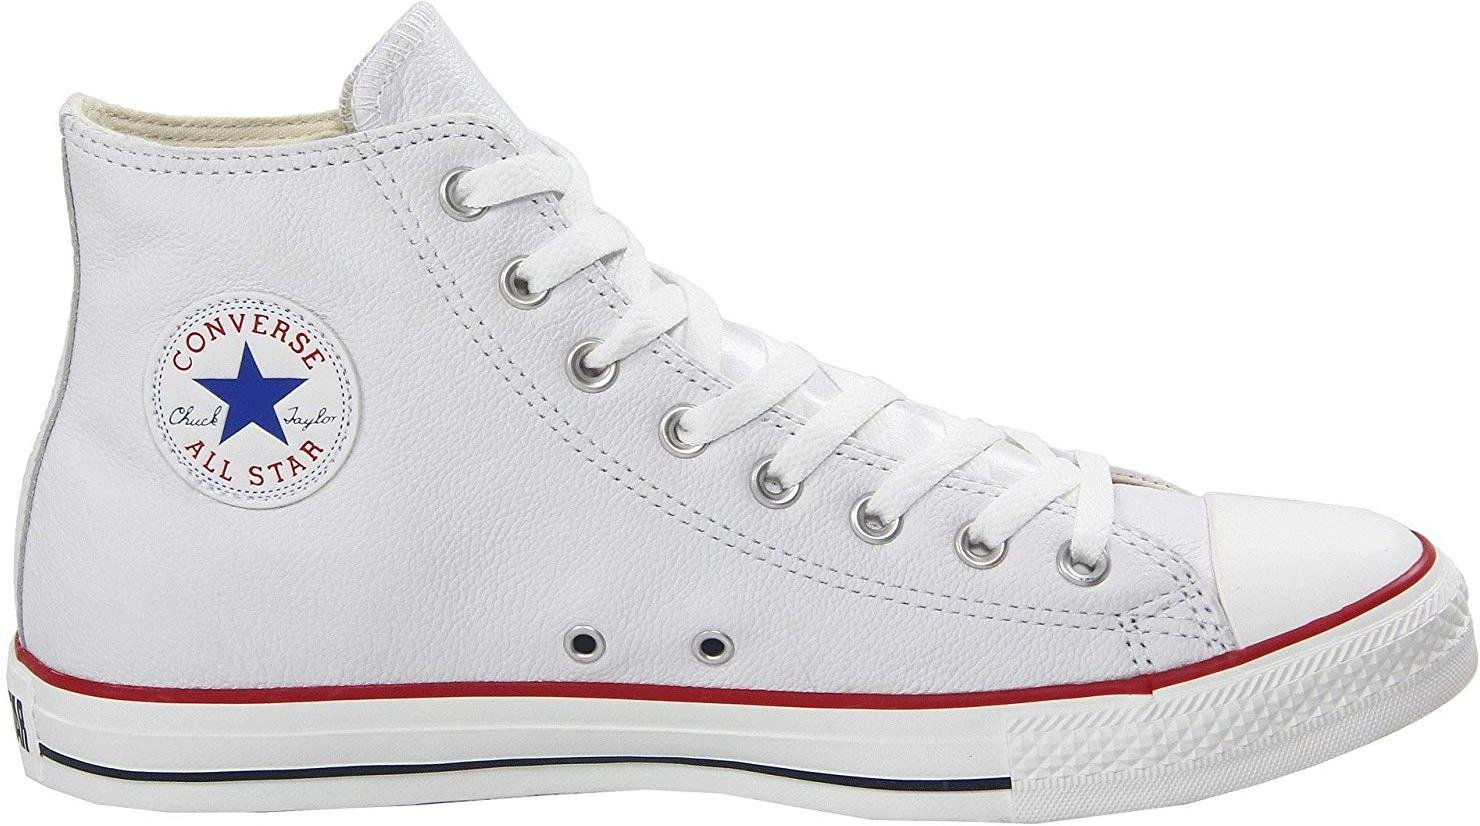 Chaussures Converse converse chuck taylor as high leather